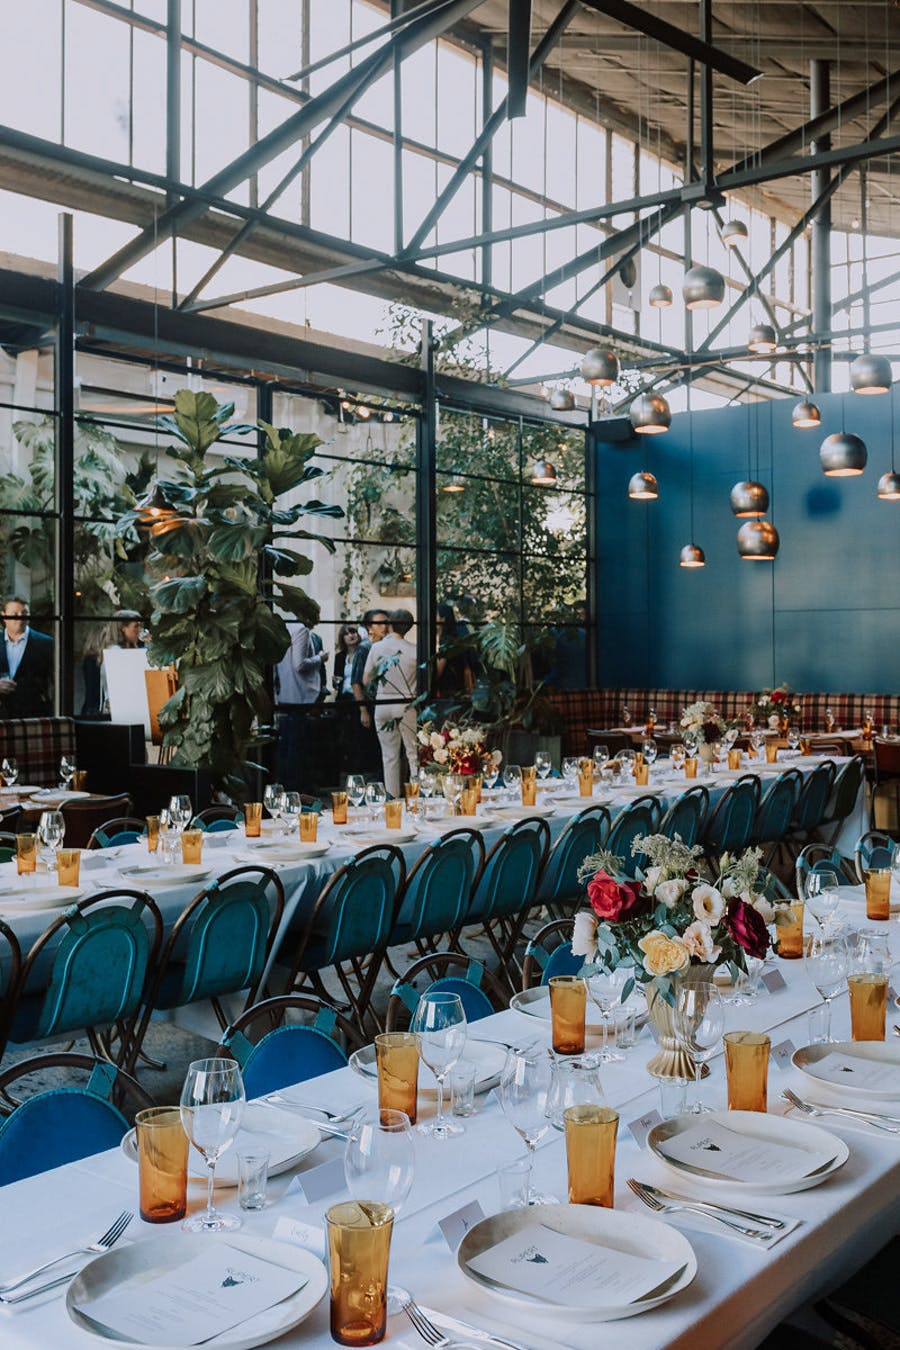 The wedding venue was industrial, with touches of blue and teal and amber glasses plus cute blooms